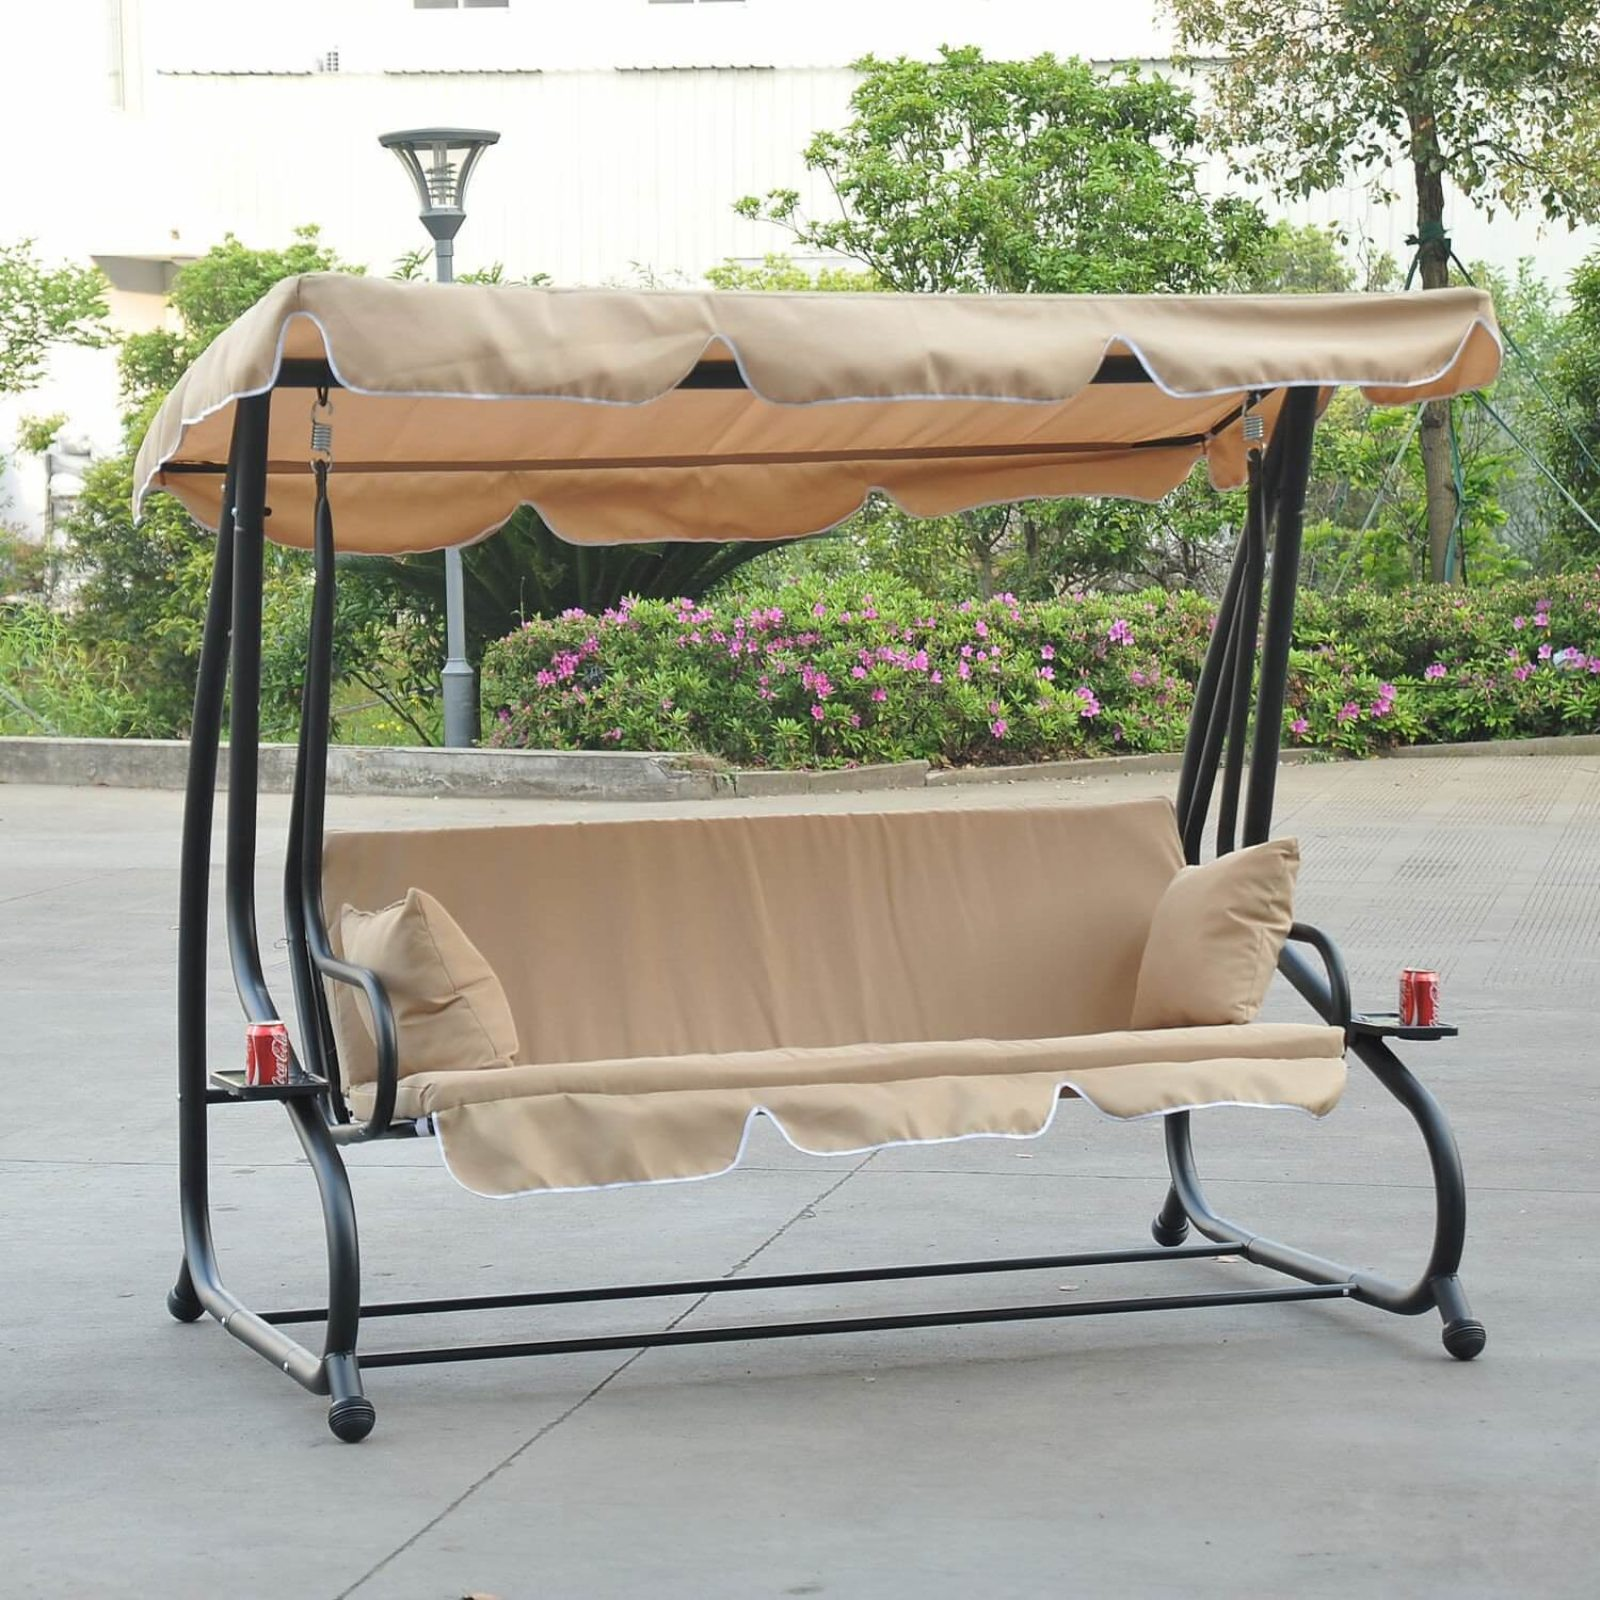 deluxe awning com frame canopy outdoor porch with and swings joveco chair bed bench swing